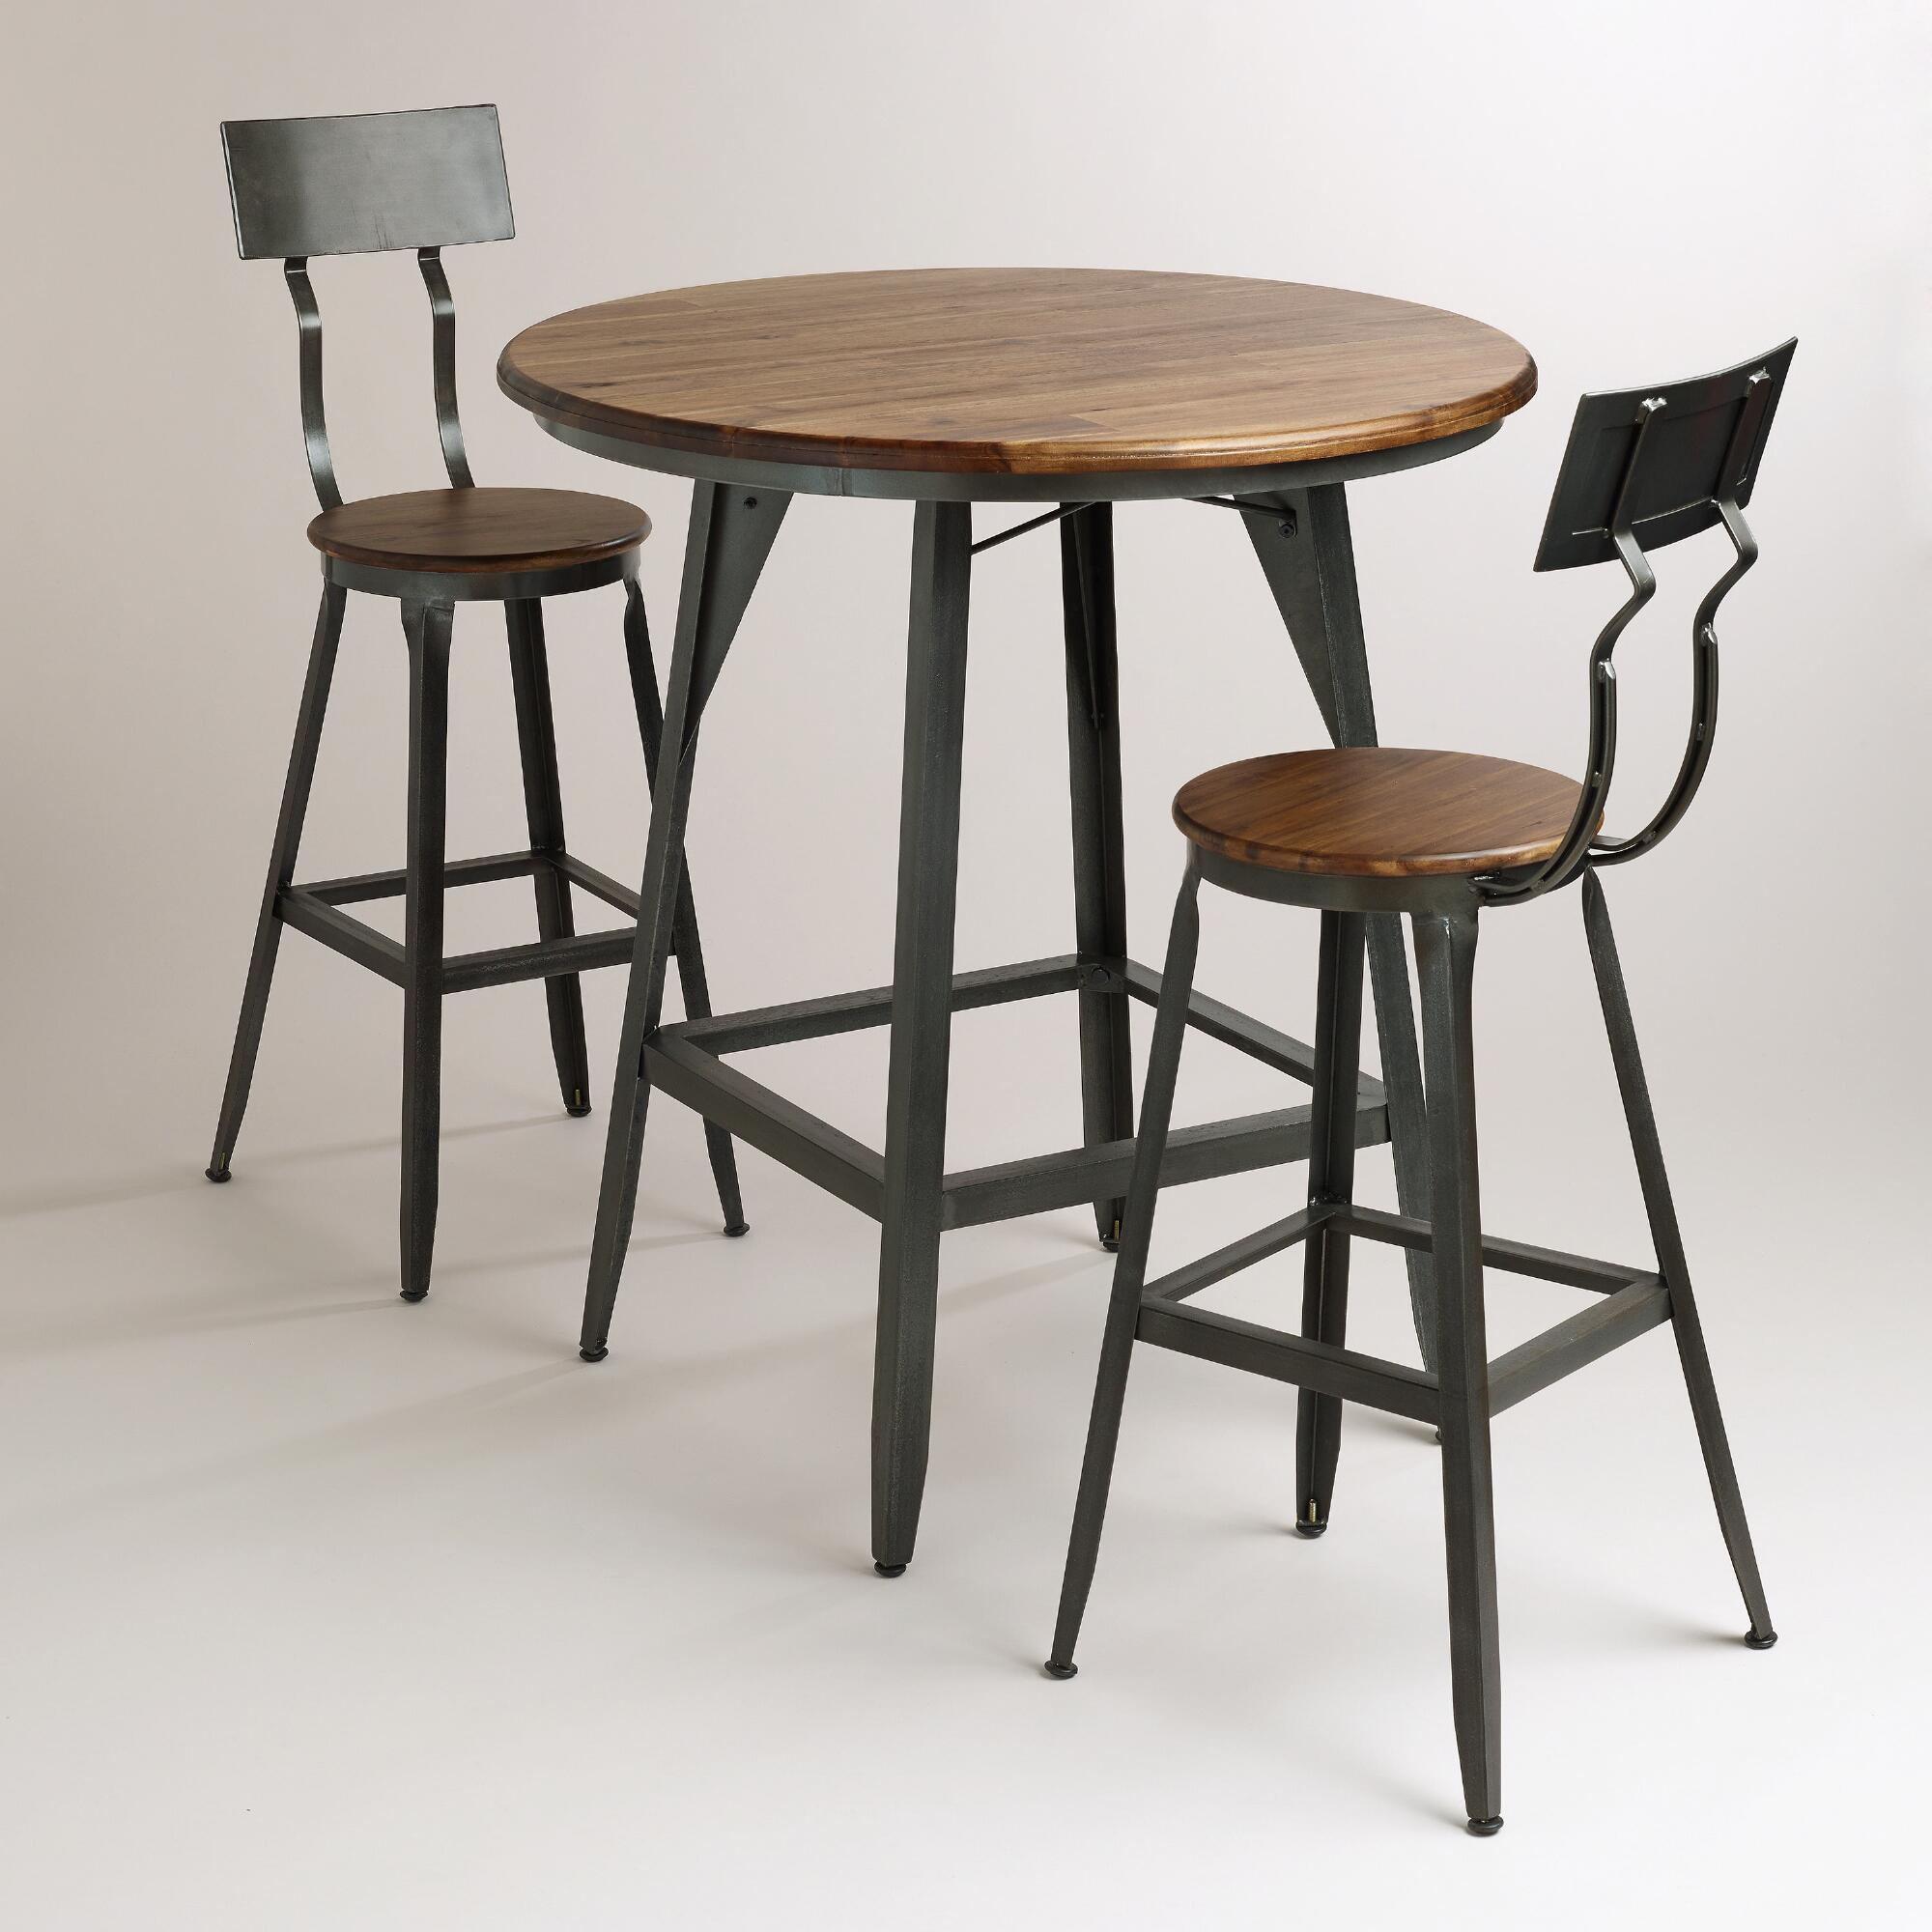 Industrial Round Pub Table With Two Chairs